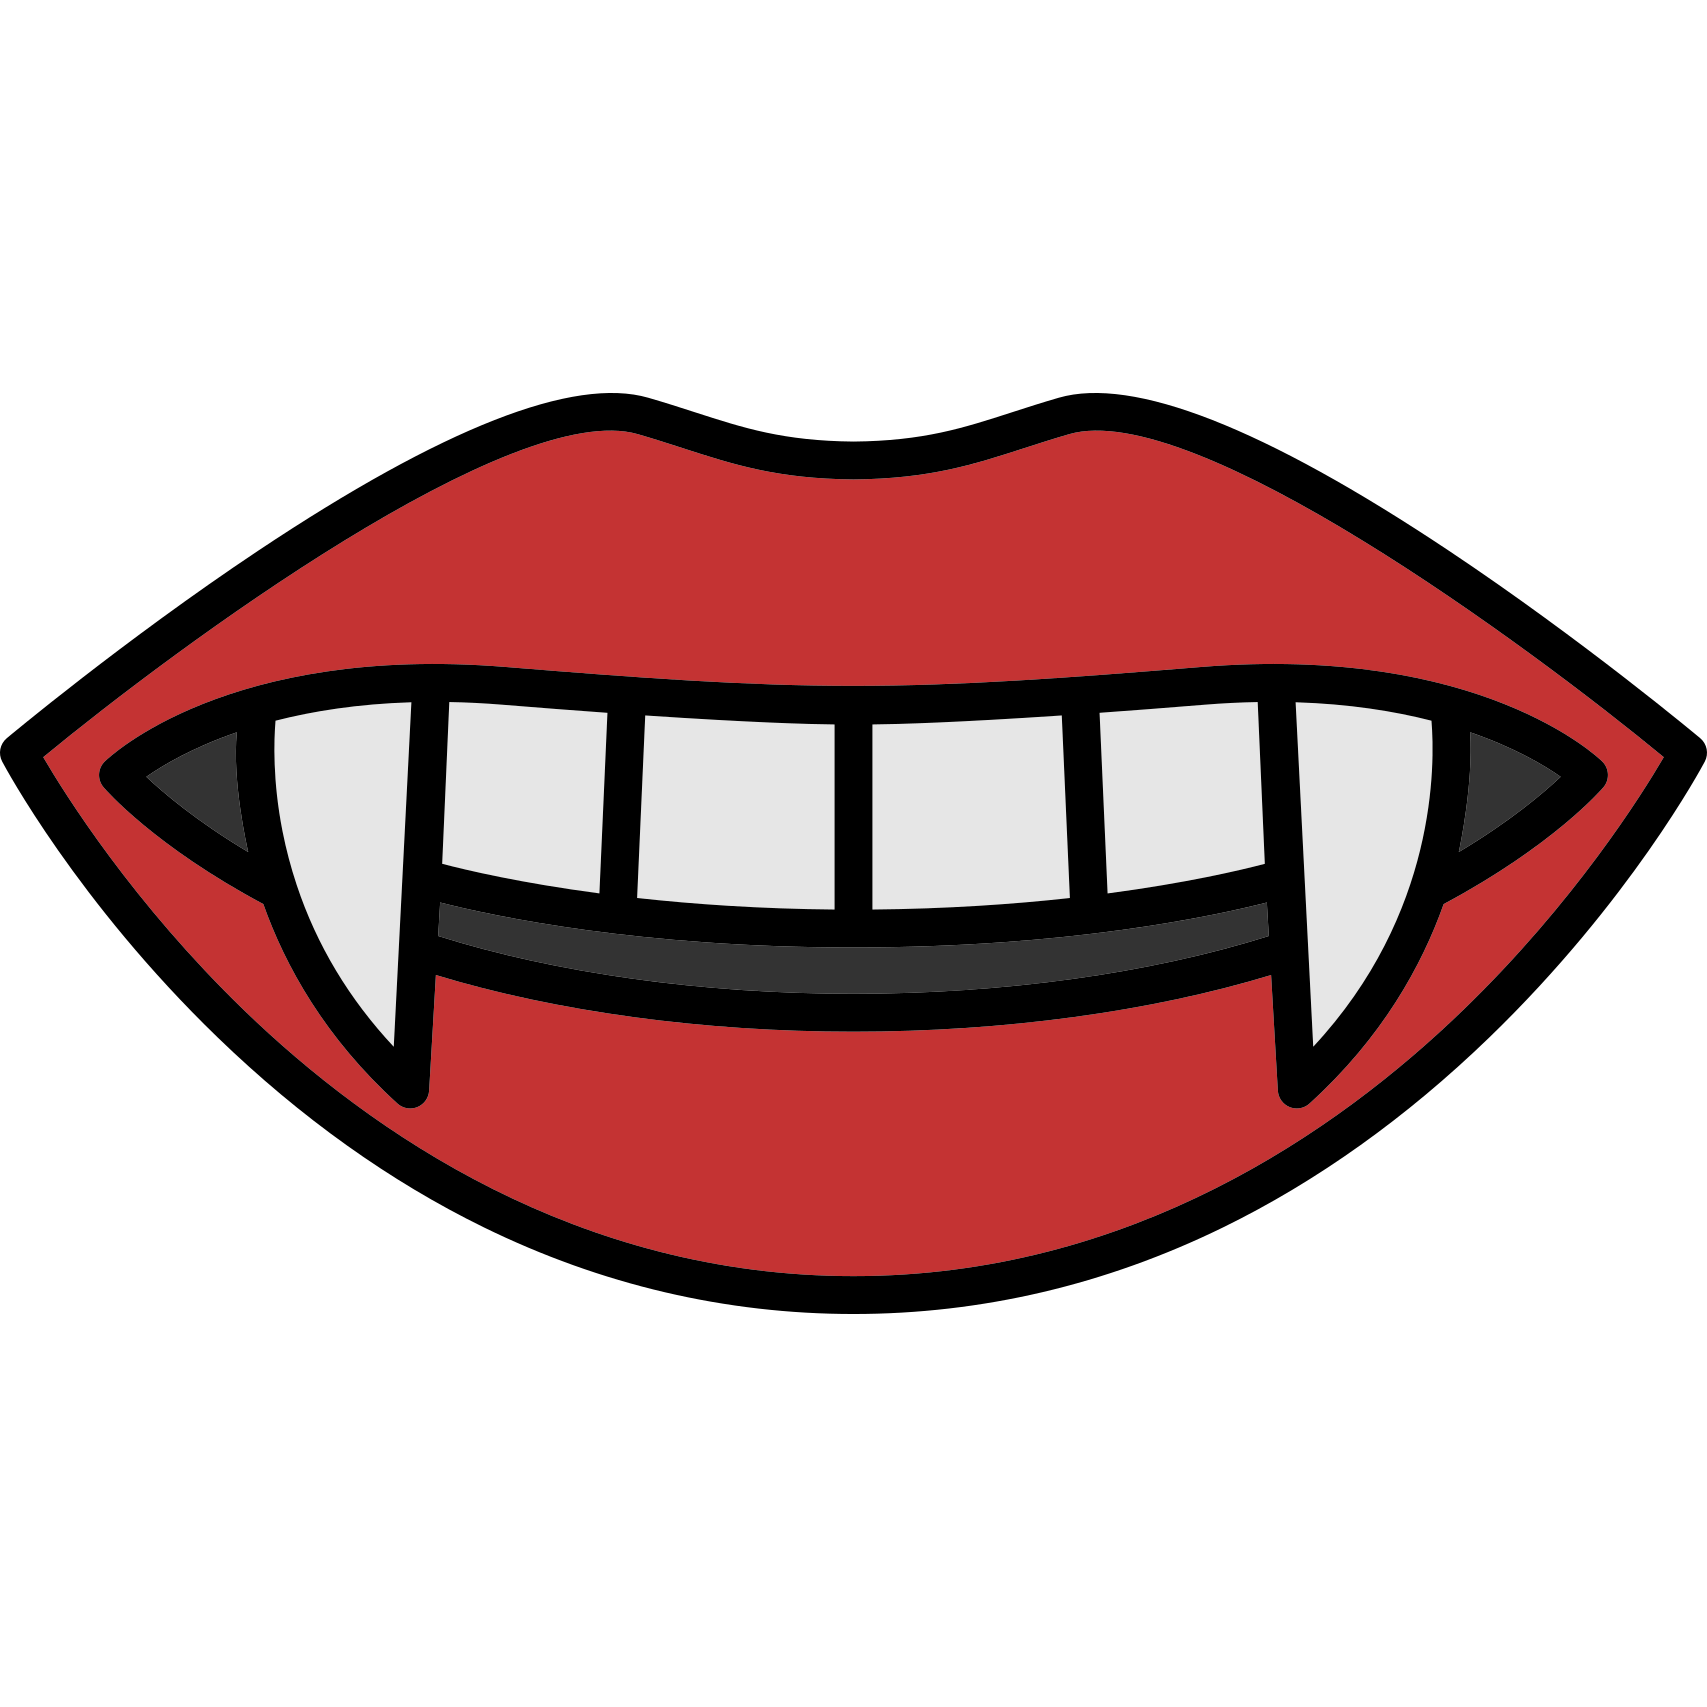 Vampire fangs high res png. Mouth clip art teeth